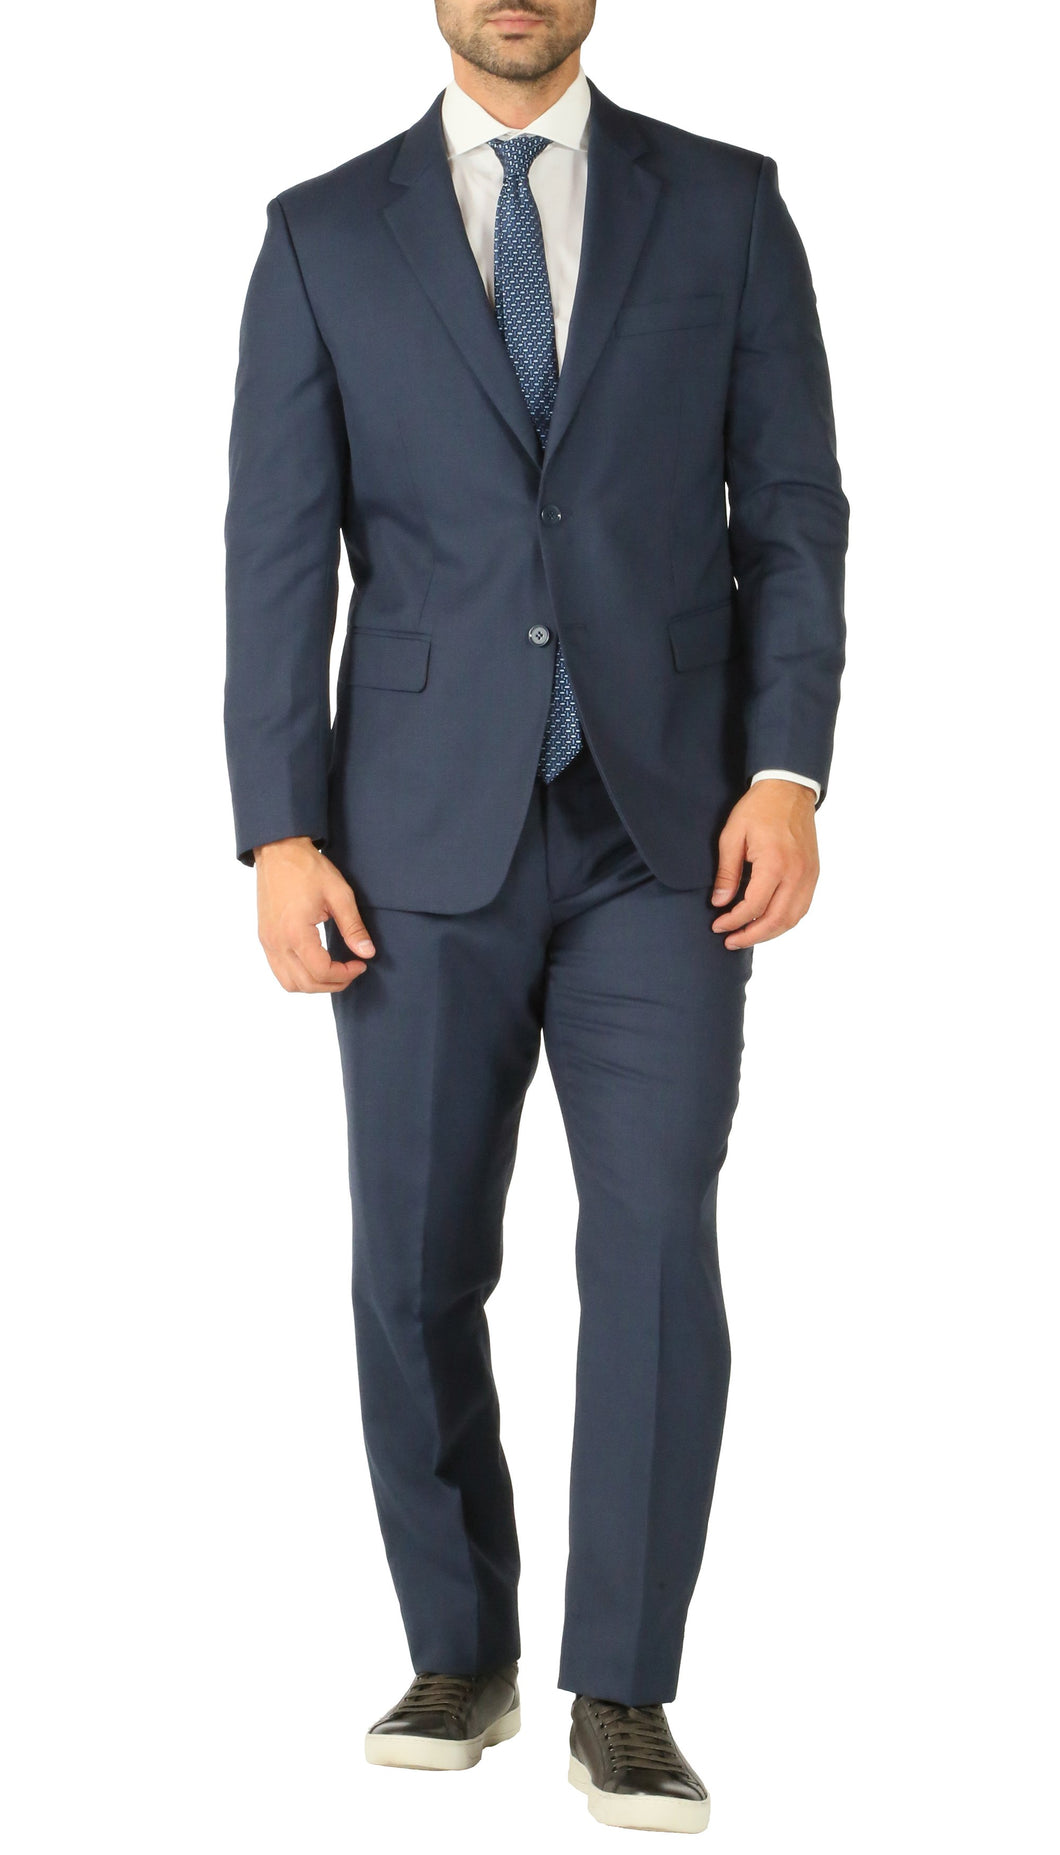 Rod Premium Blue Wool 2 Piece Suit Stain Resistant Traveler Suit - w 2 Pairs of Pants - Ferrecci USA